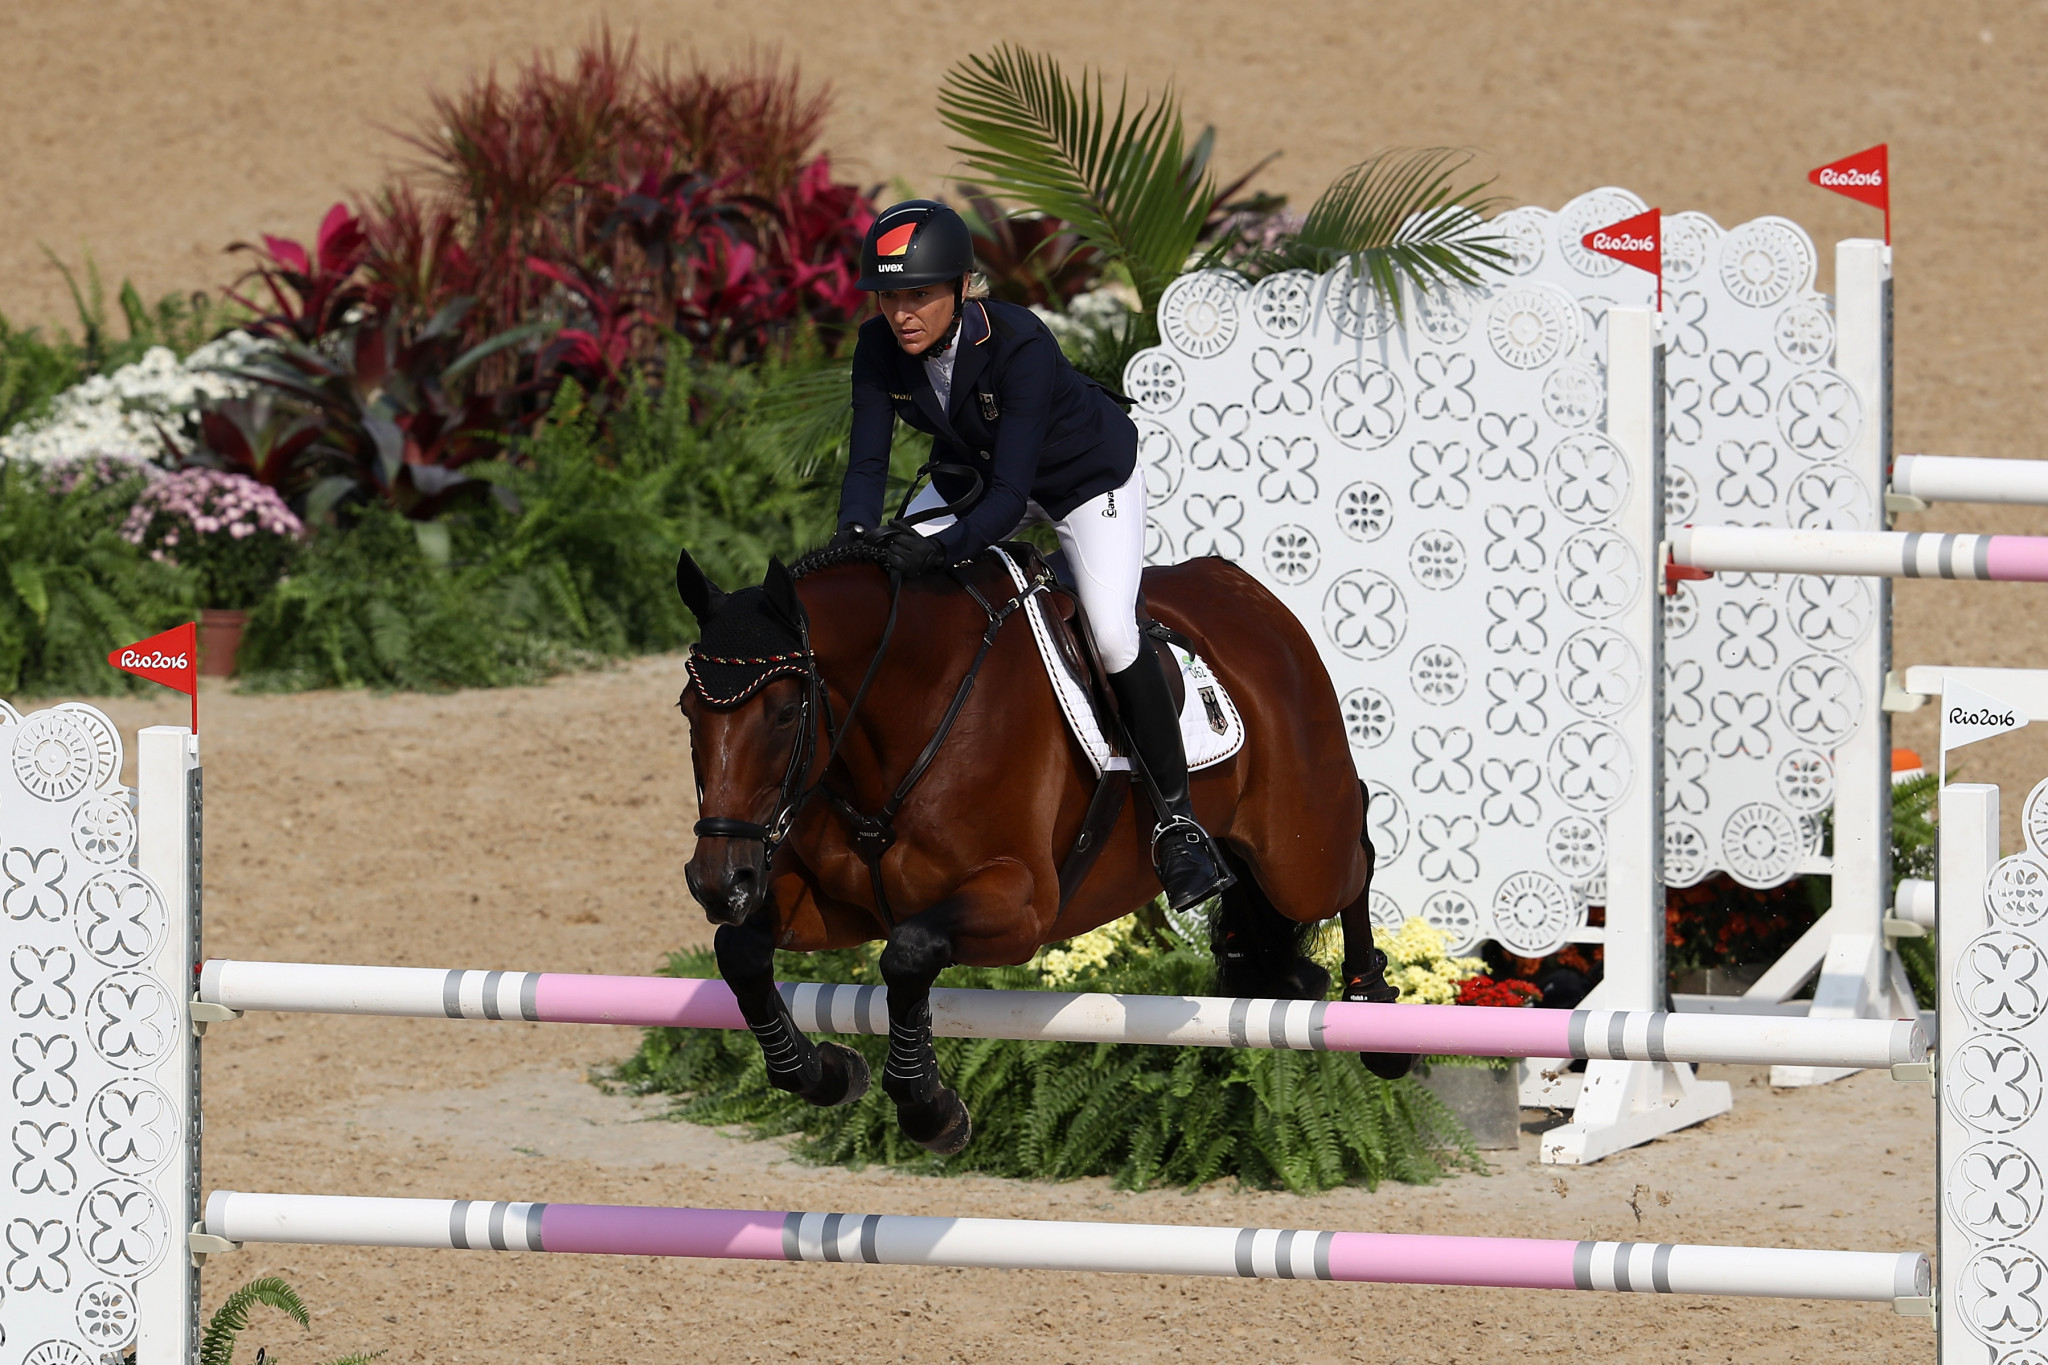 Five-time Olympian Klimke wins top prize at FEI Best of the Decade Awards